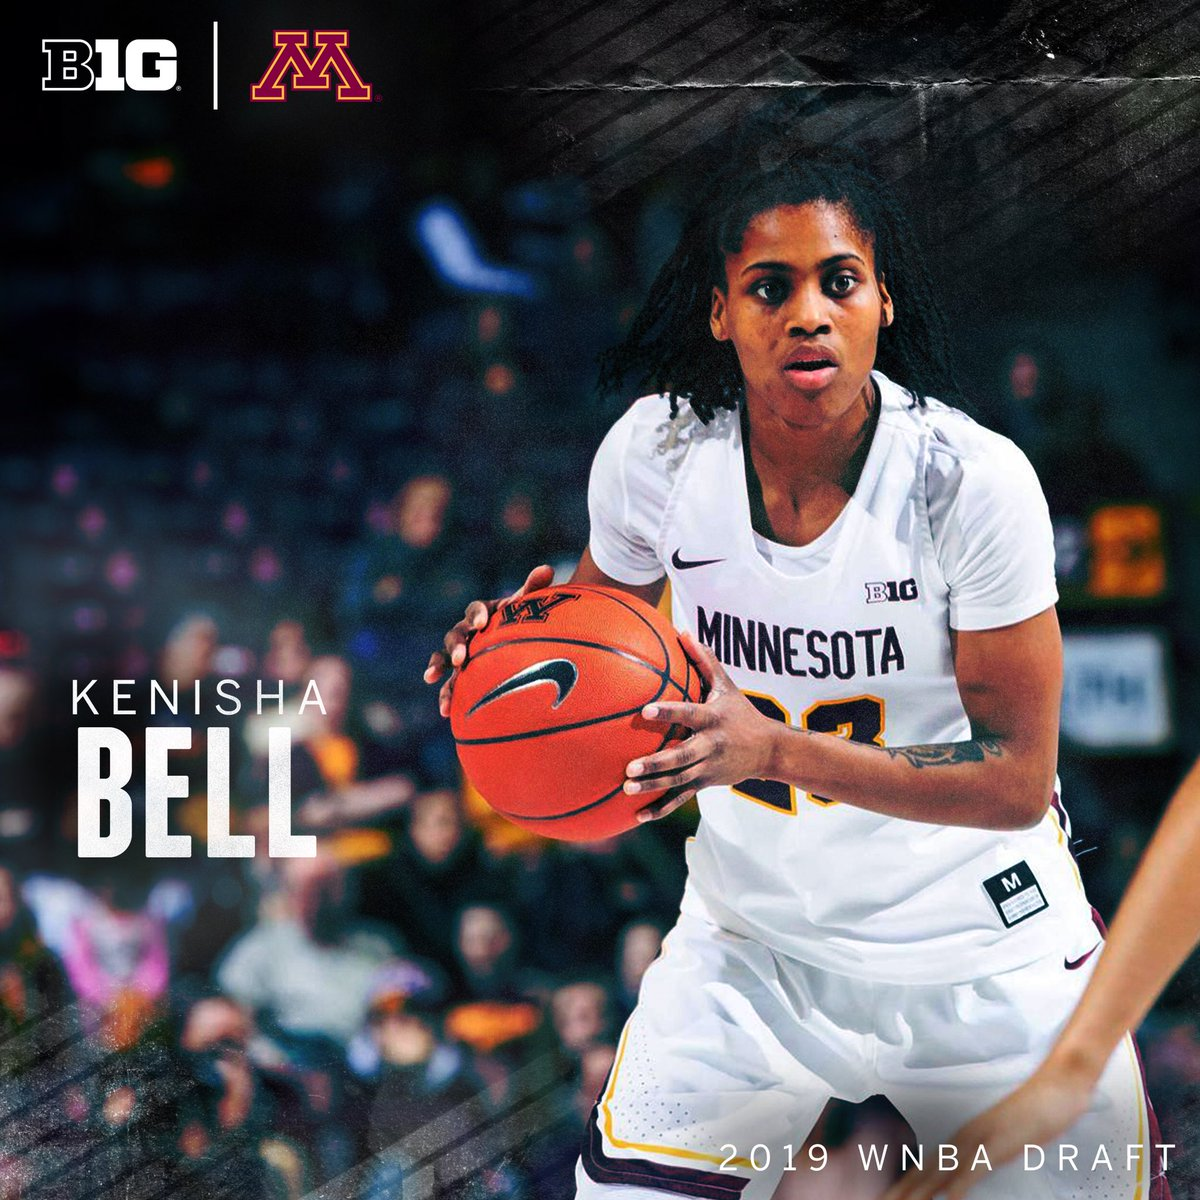 Two-time All-Big Ten selection Kenisha Bell earned Academic All-Big Ten honors this season while pursuing a degree in recreation administration.  #B1GWBBall x #WNBADraft